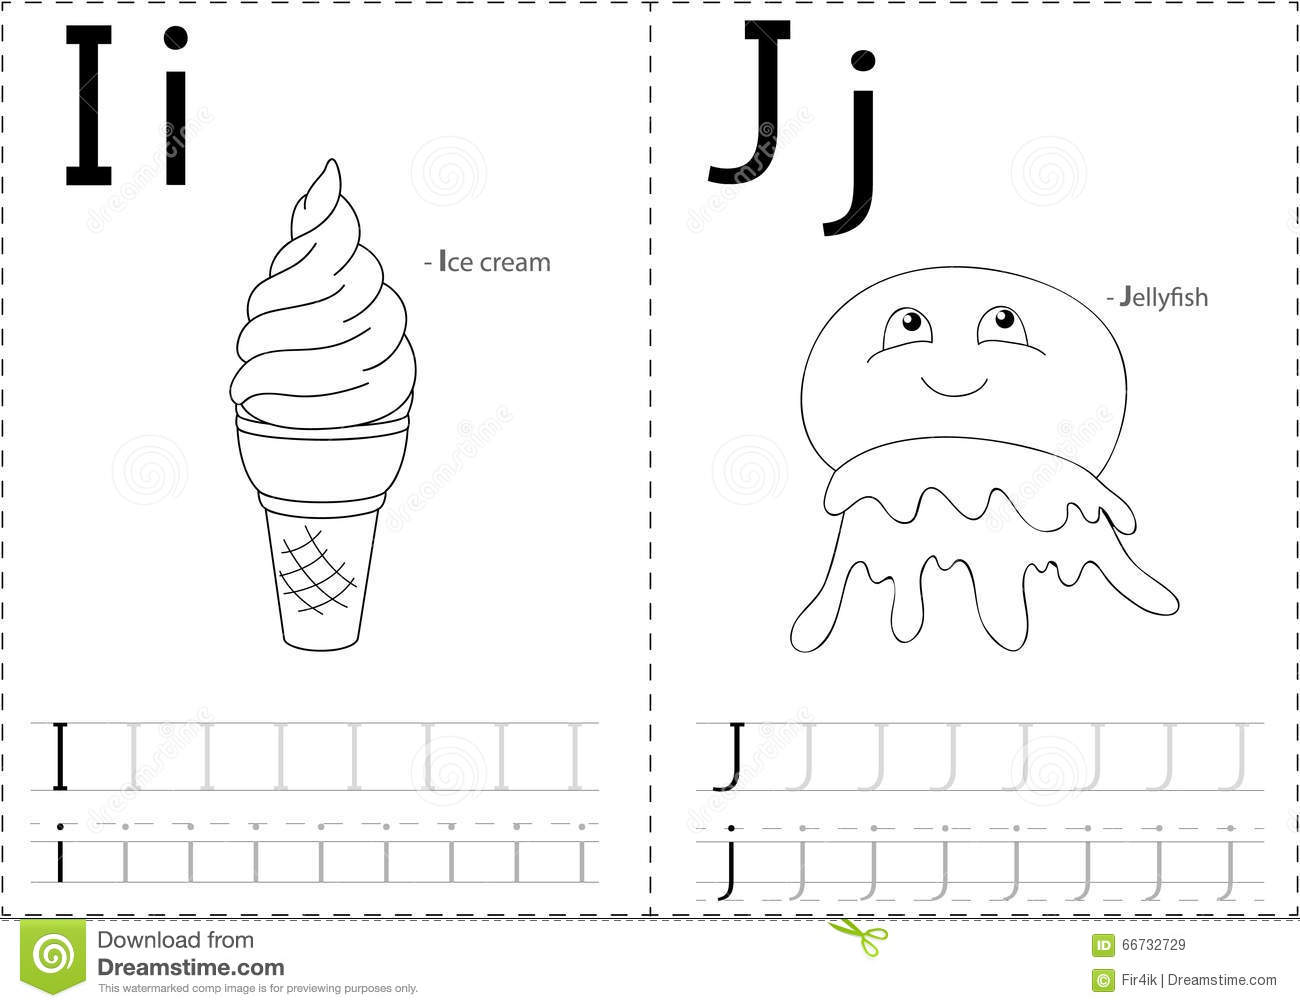 Cartoon Ice Cream And Jellyfish Alphabet Tracing